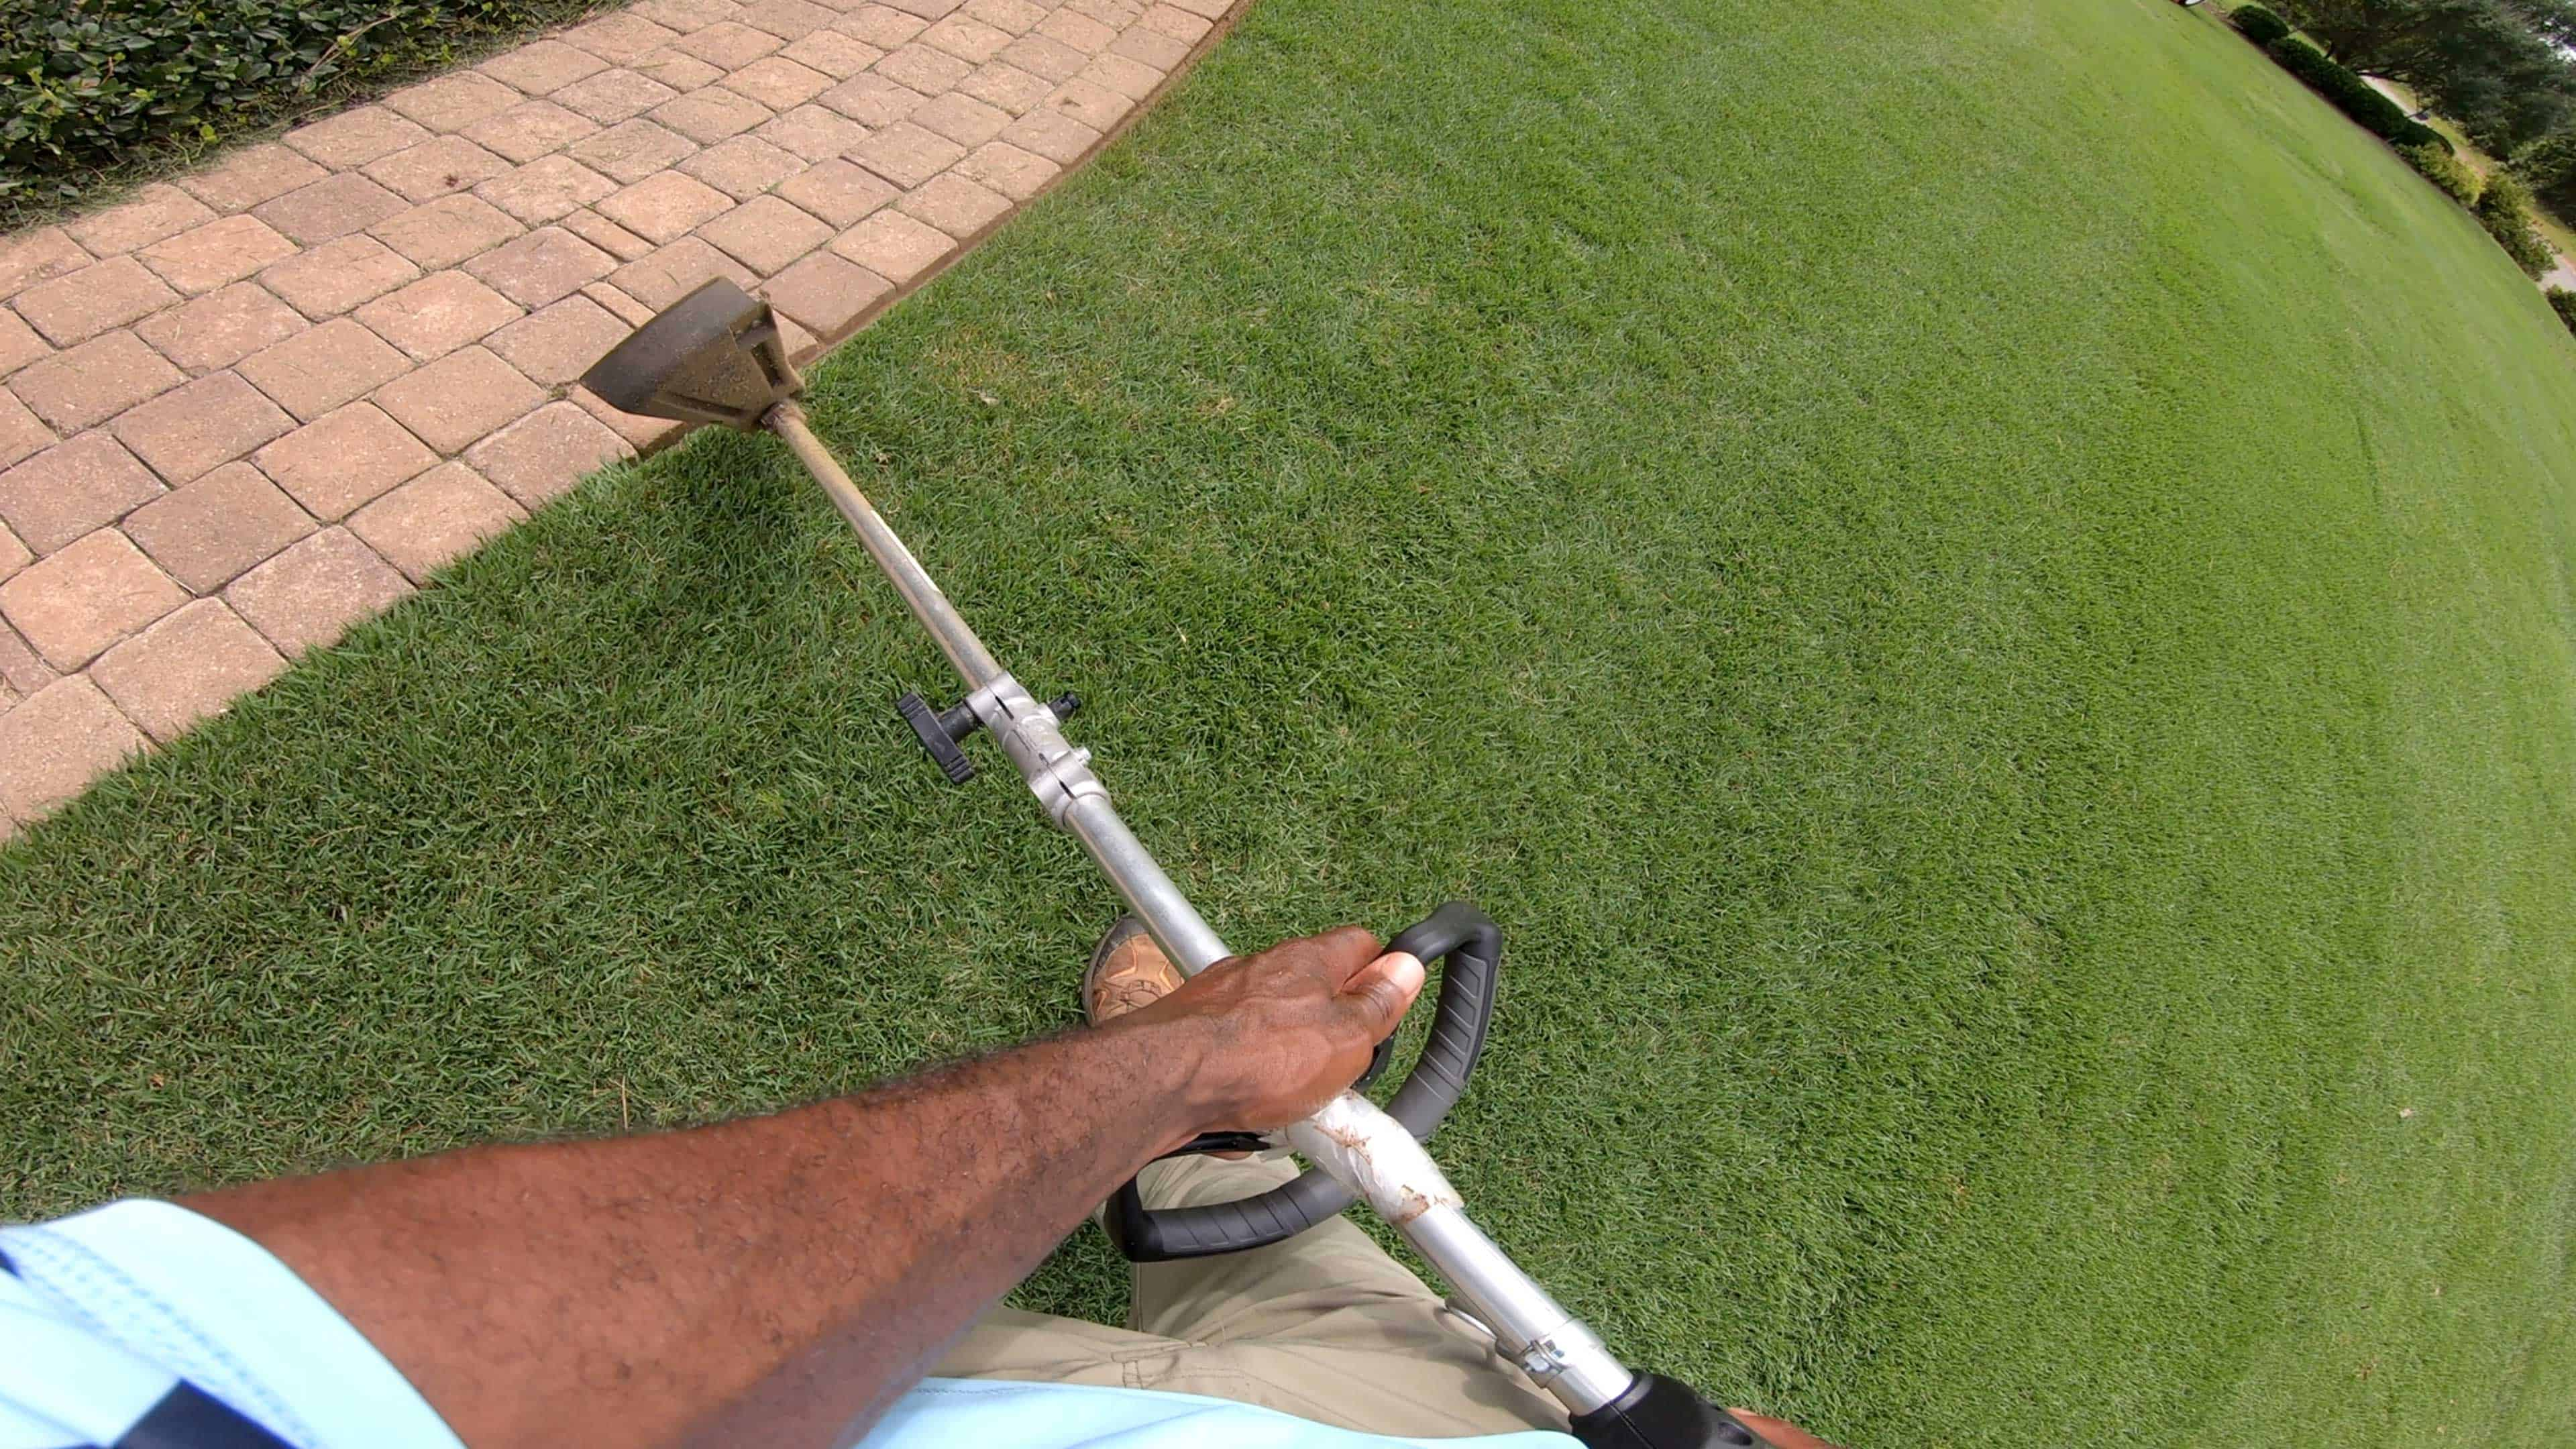 Use a edger to create precise transitions